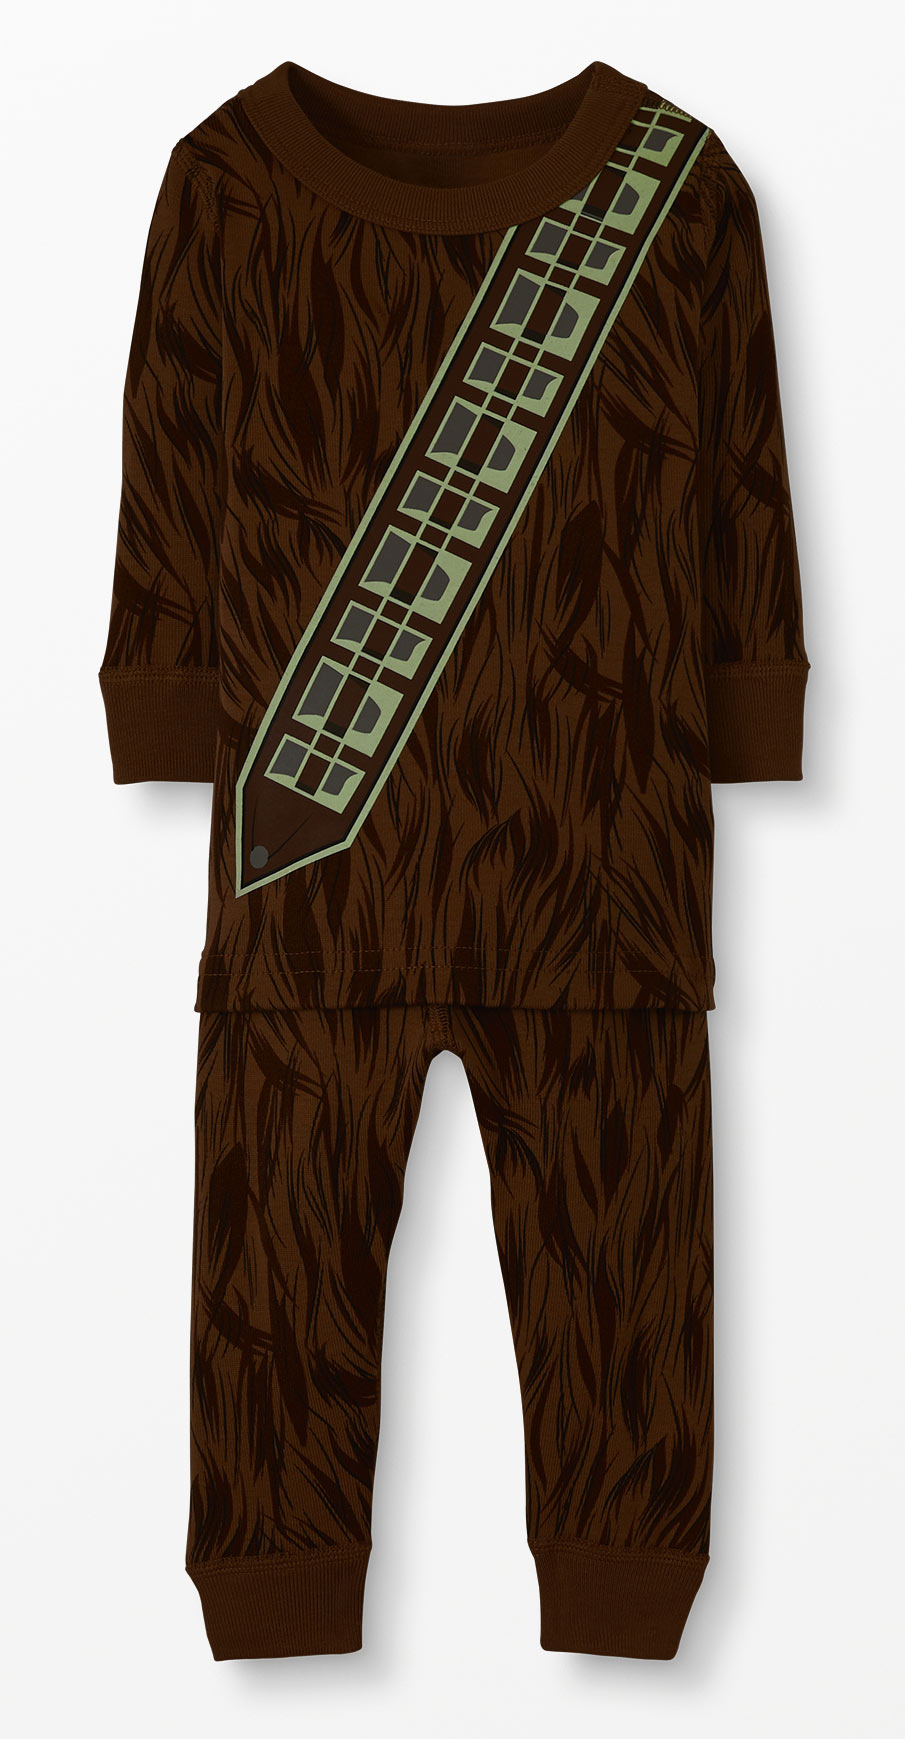 Star Wars Glow-in-the-Dark Chewbacca Pajamas by Hanna Andersson